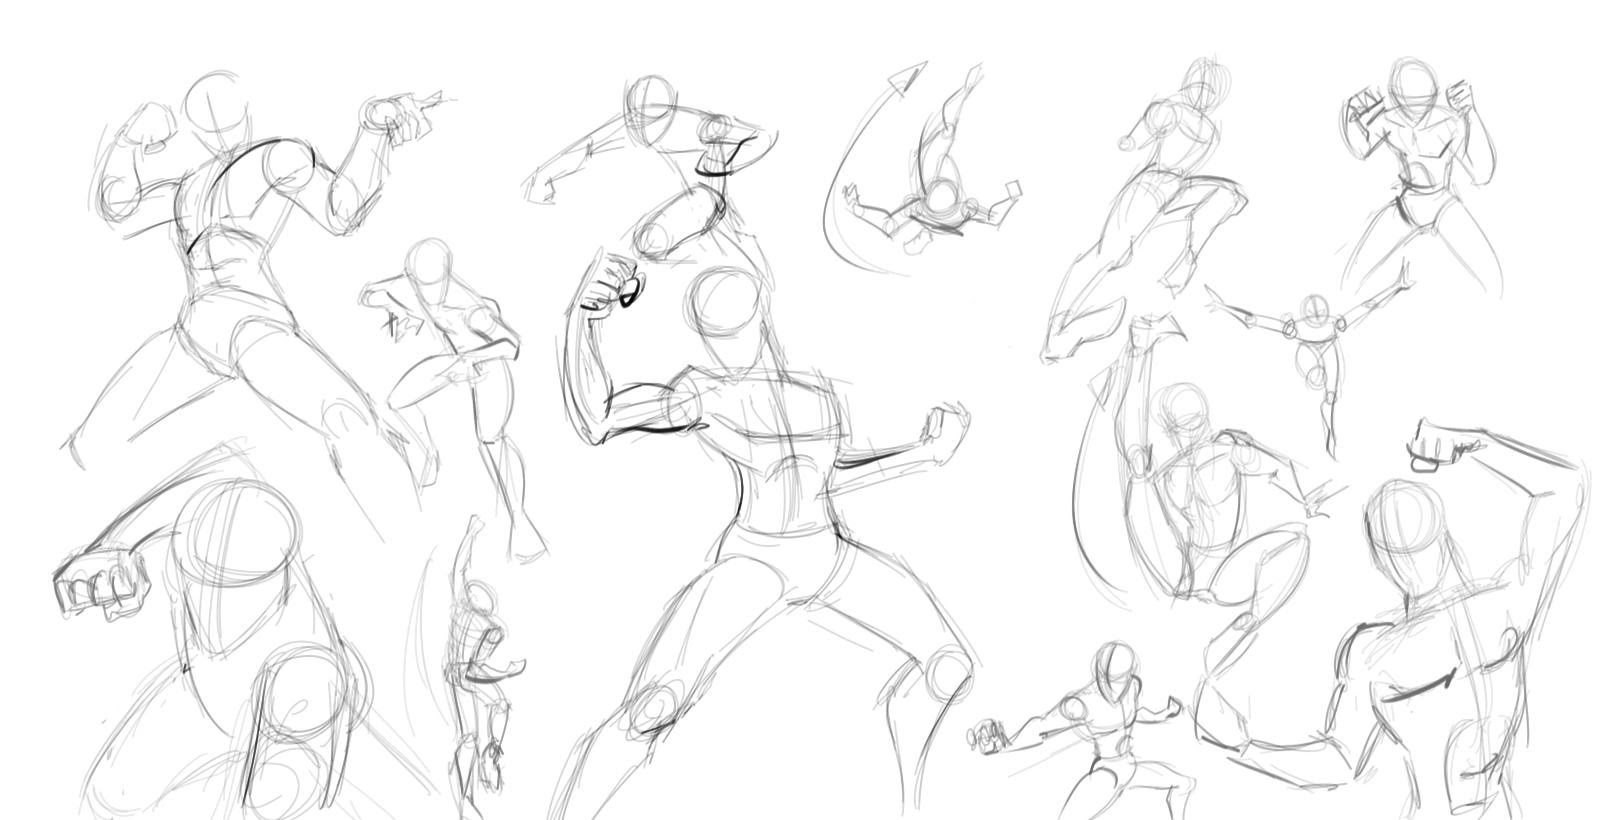 Practicing more Action Figure Sketches in Box forms of men and women ...